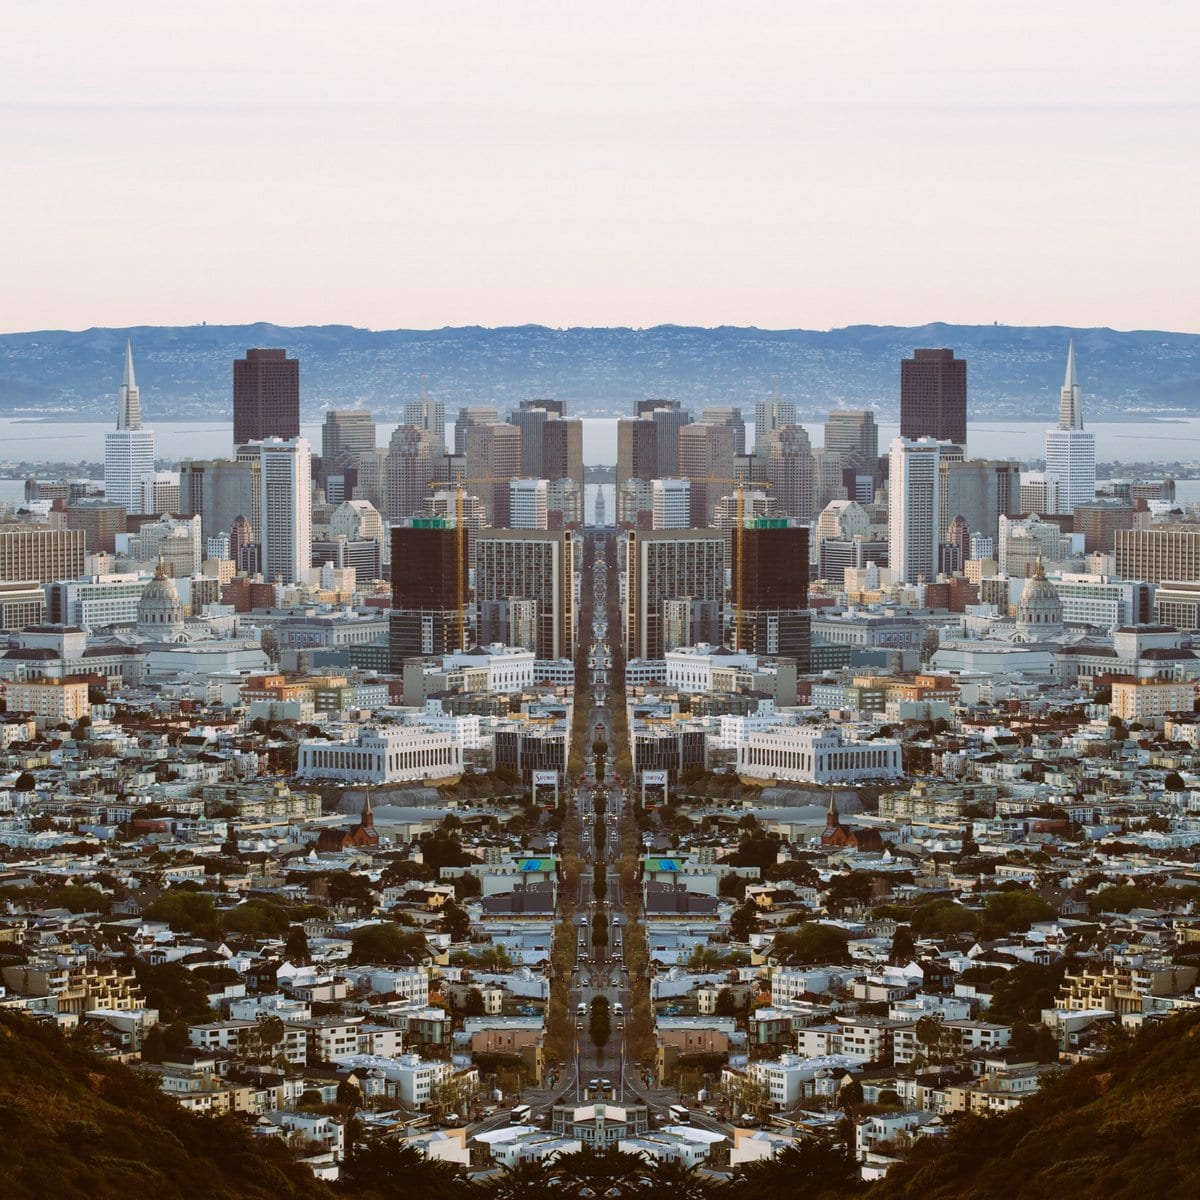 DigitalAnthill_Mirrored00027